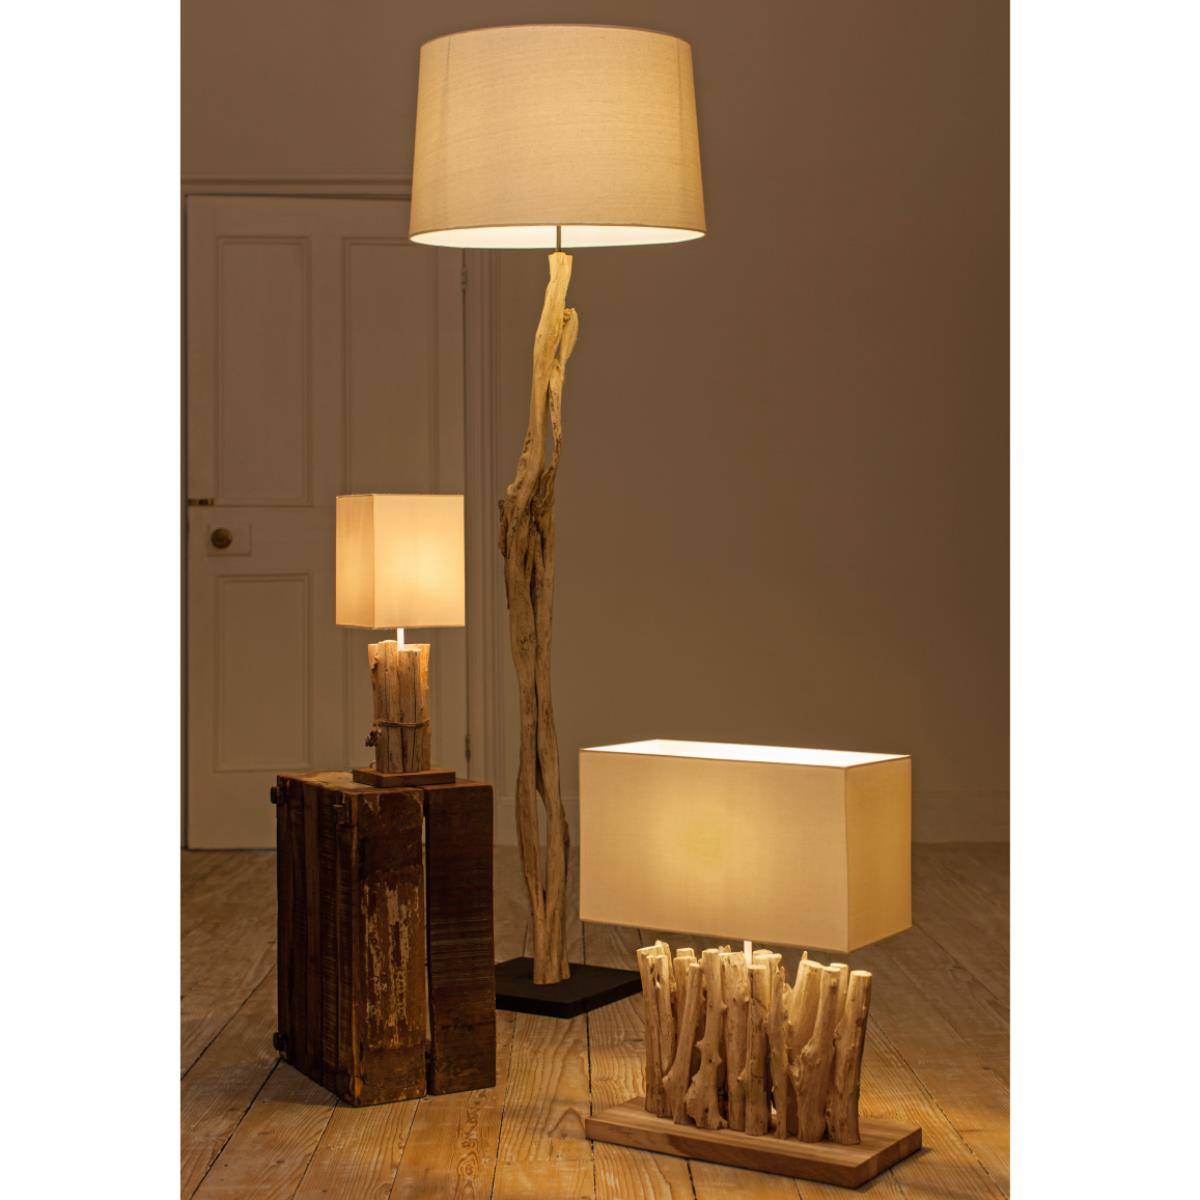 decorative driftwood floor lamp with cream head for lighting decor ideas